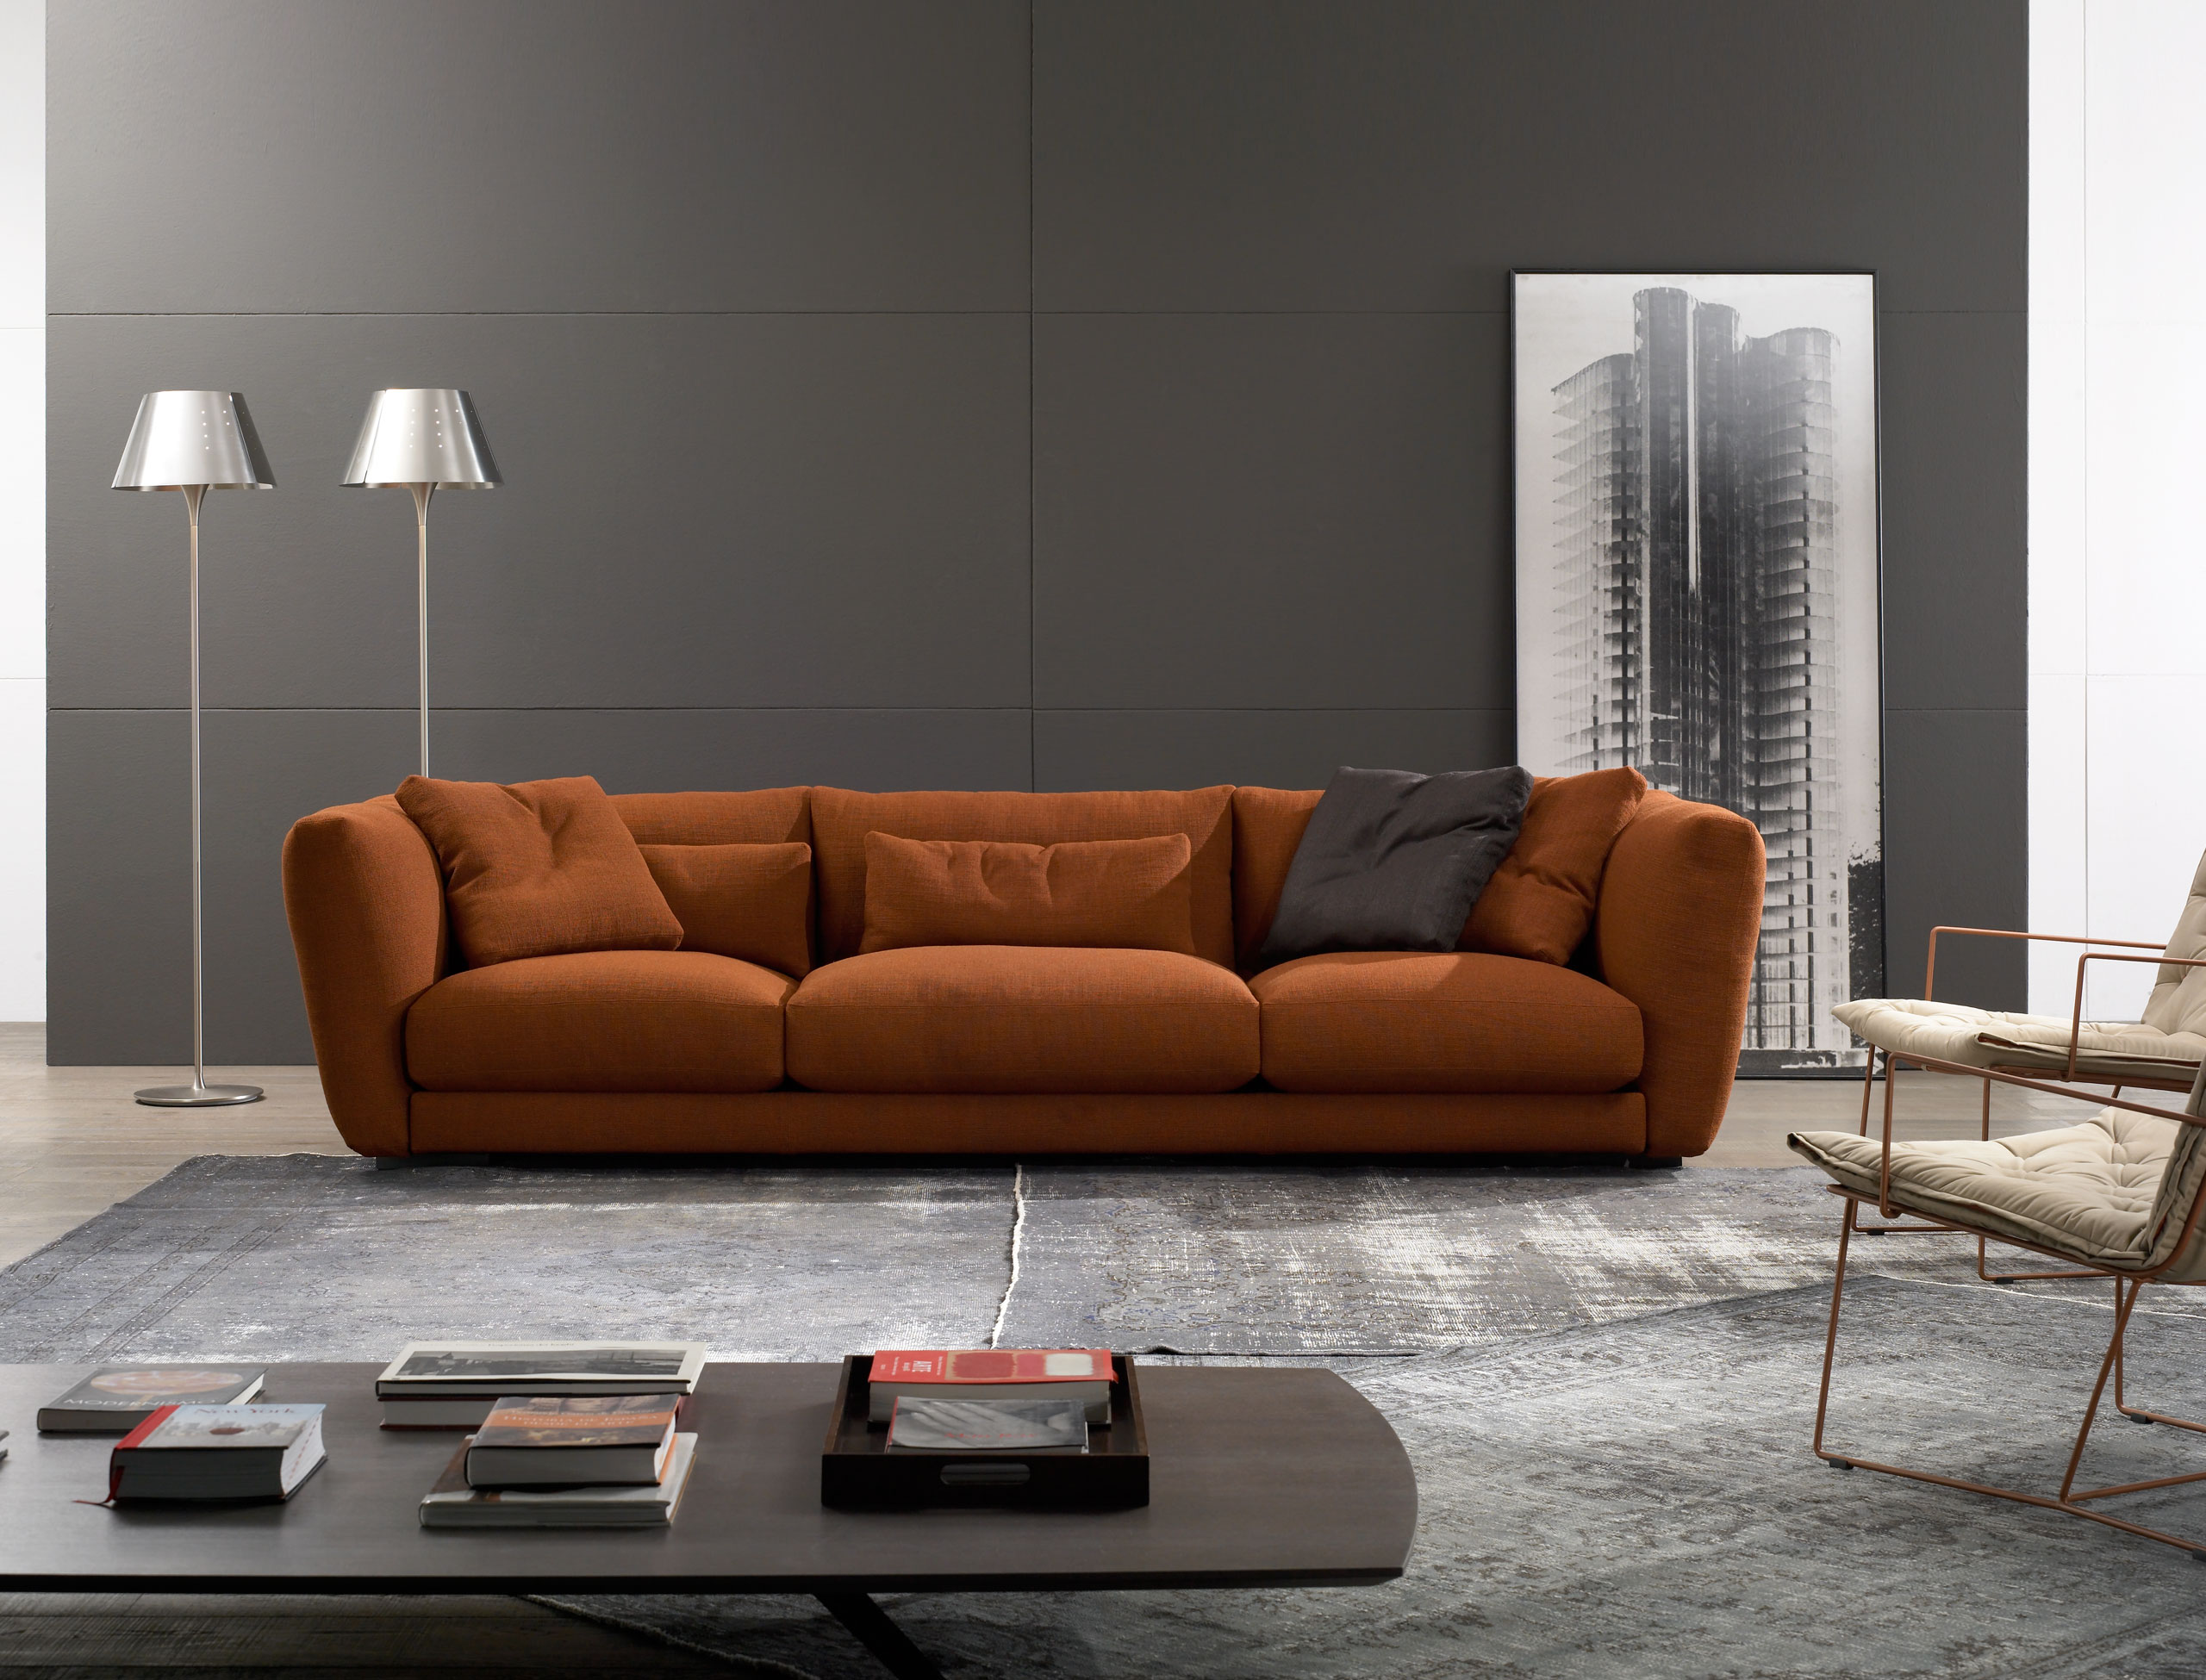 Casadesus Mallorca Muebles Casadesus The Why Factory # Muebles Palma De Mallorca